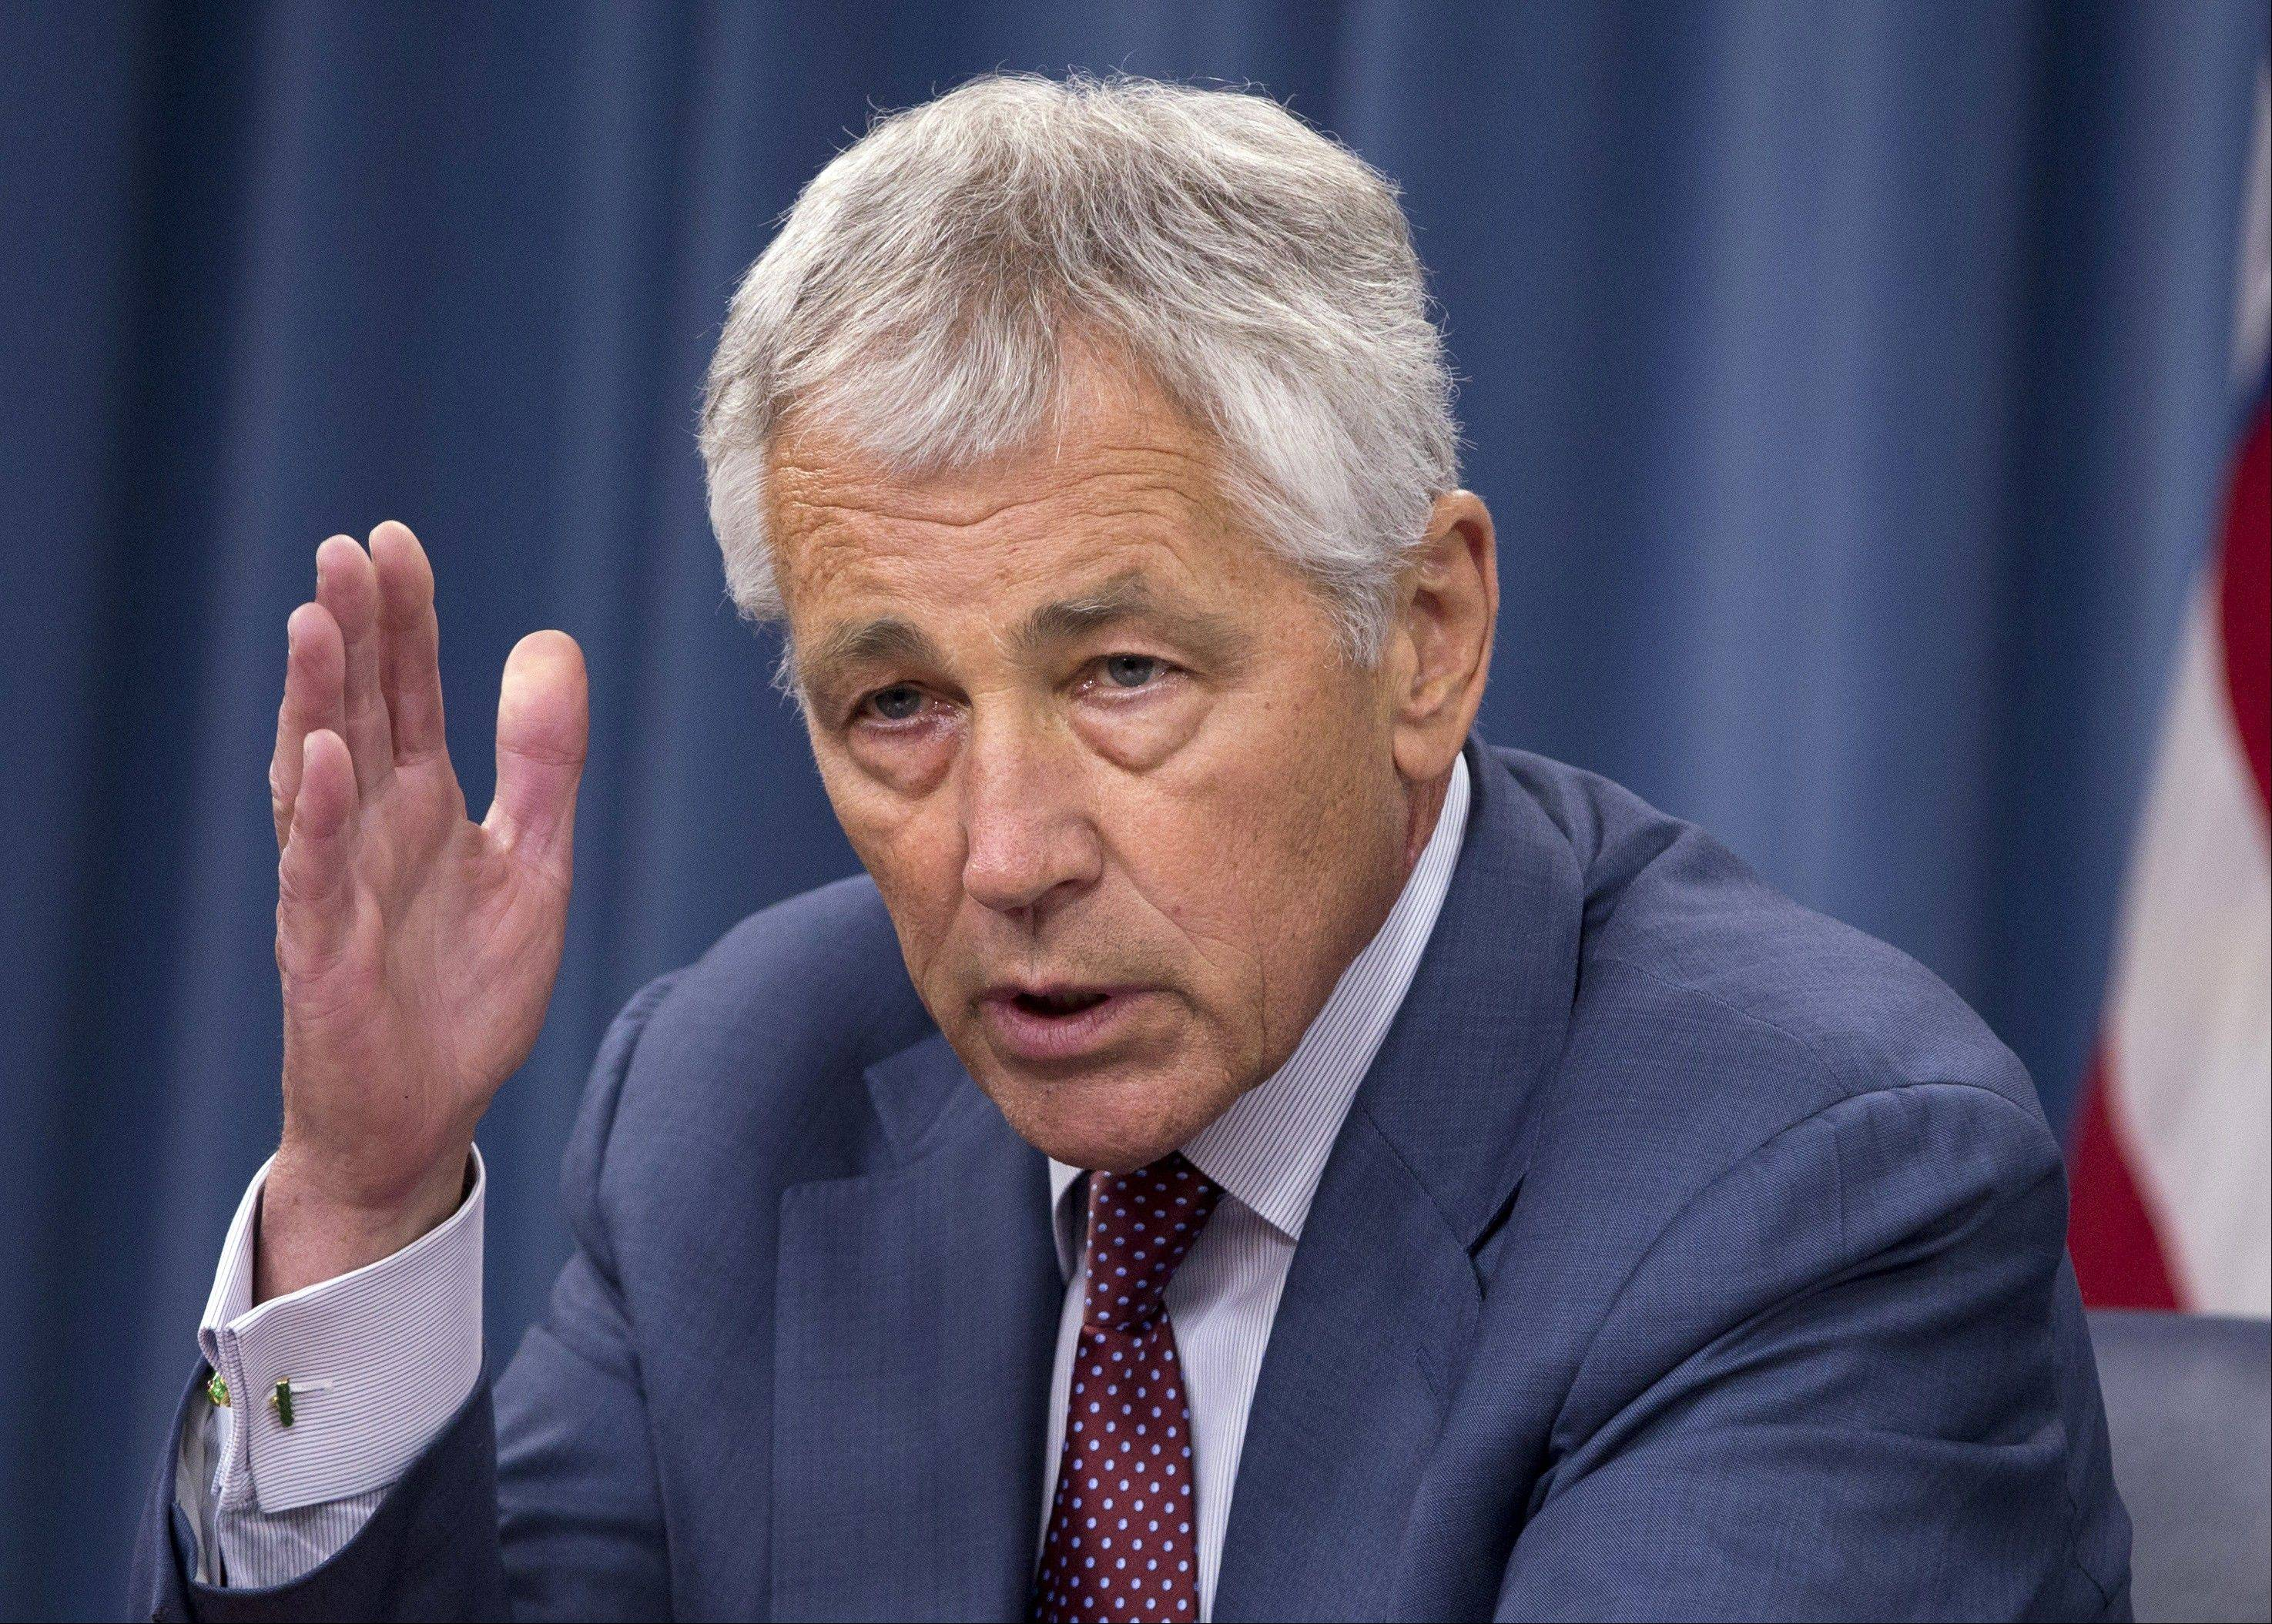 In this July 31, 2013, file photo, Defense Secretary Chuck Hagel speaks during a news conference at the Pentagon. The Pentagon is poised to extend health care, housing and other benefits to the same-sex spouses of military members by the end of August, but may reverse earlier plans to provide benefits to gay partners who are not married.